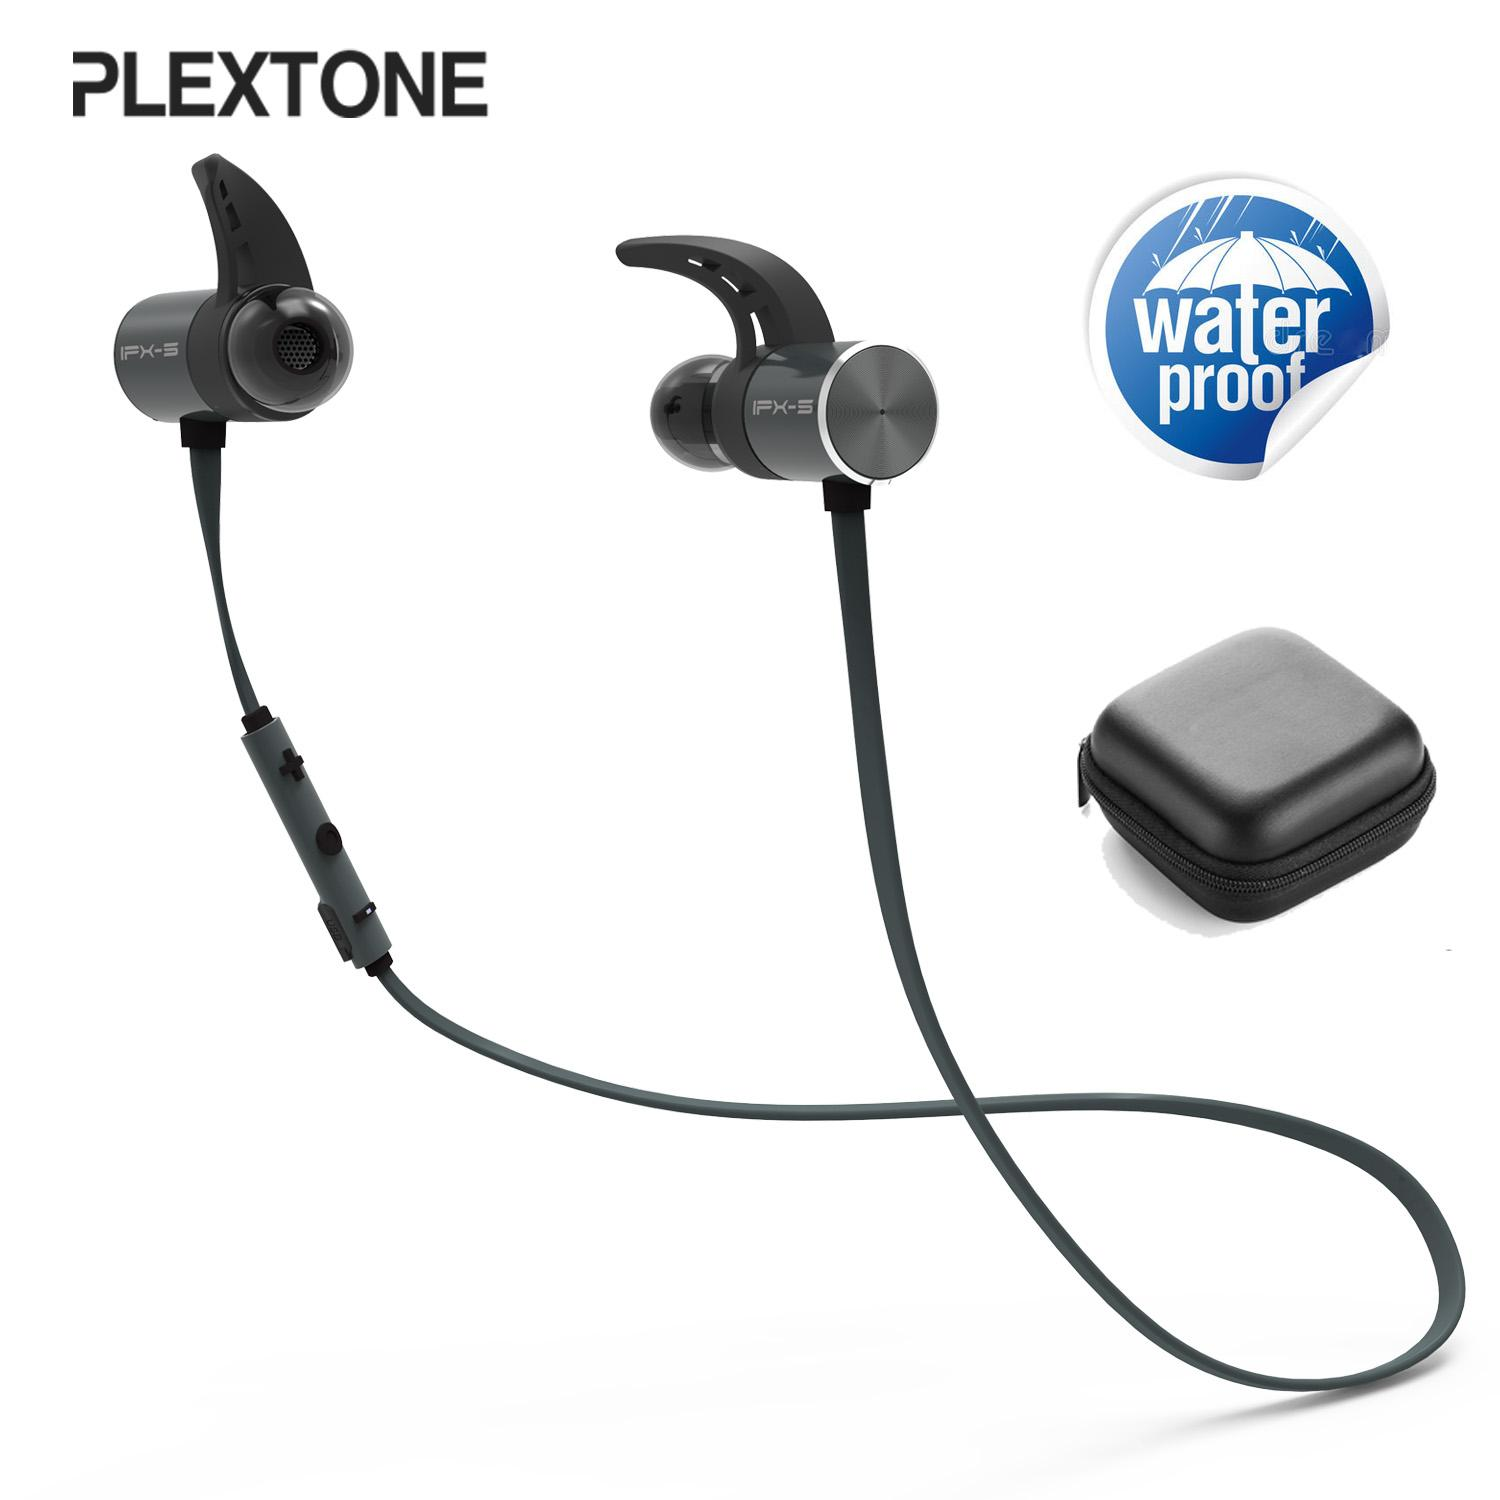 Buy Headphones Online Headsets Jabra Sport Bluetooth Stereo Headset On Lg Wireless Speaker Plextone Bx343 Headphone Ipx5 Waterproof Earbuds Workout Magnetic Earphones With Microphone For